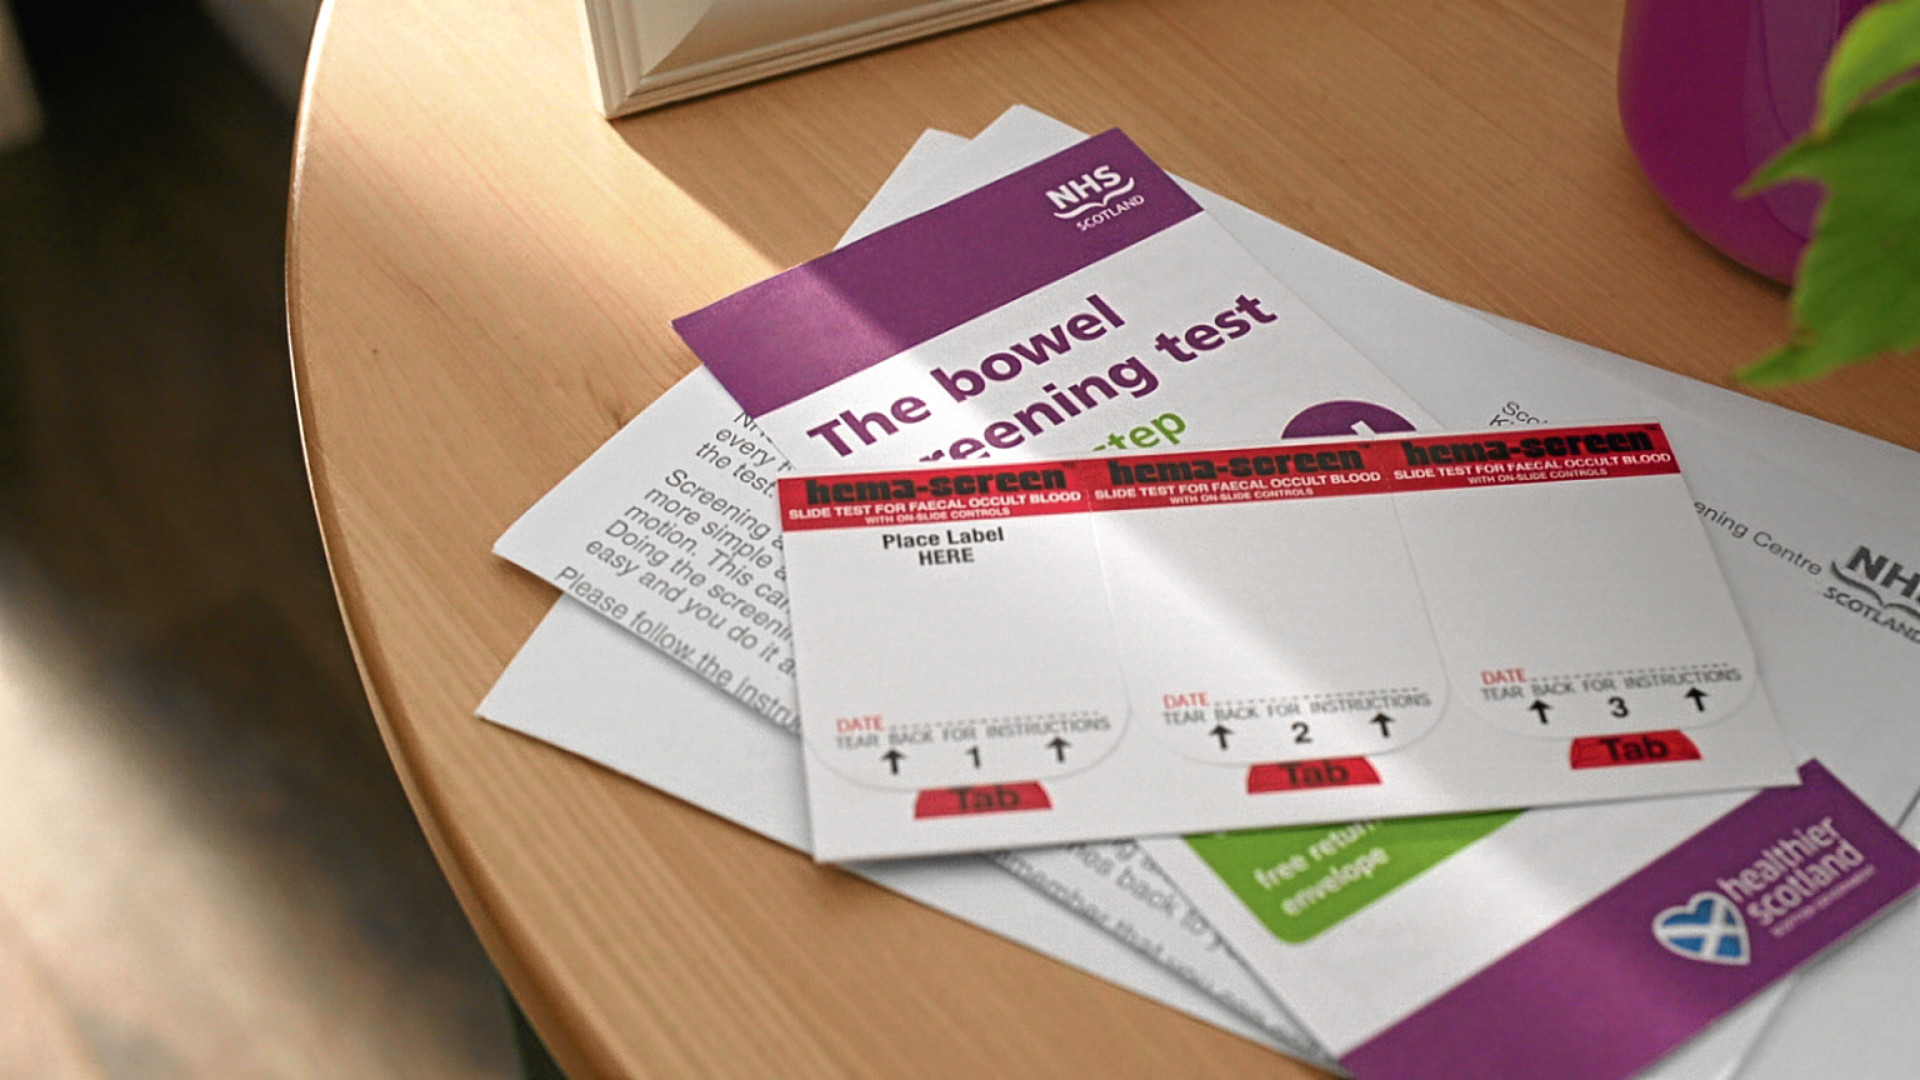 Bowel screening is offered to men and women aged 50-74.